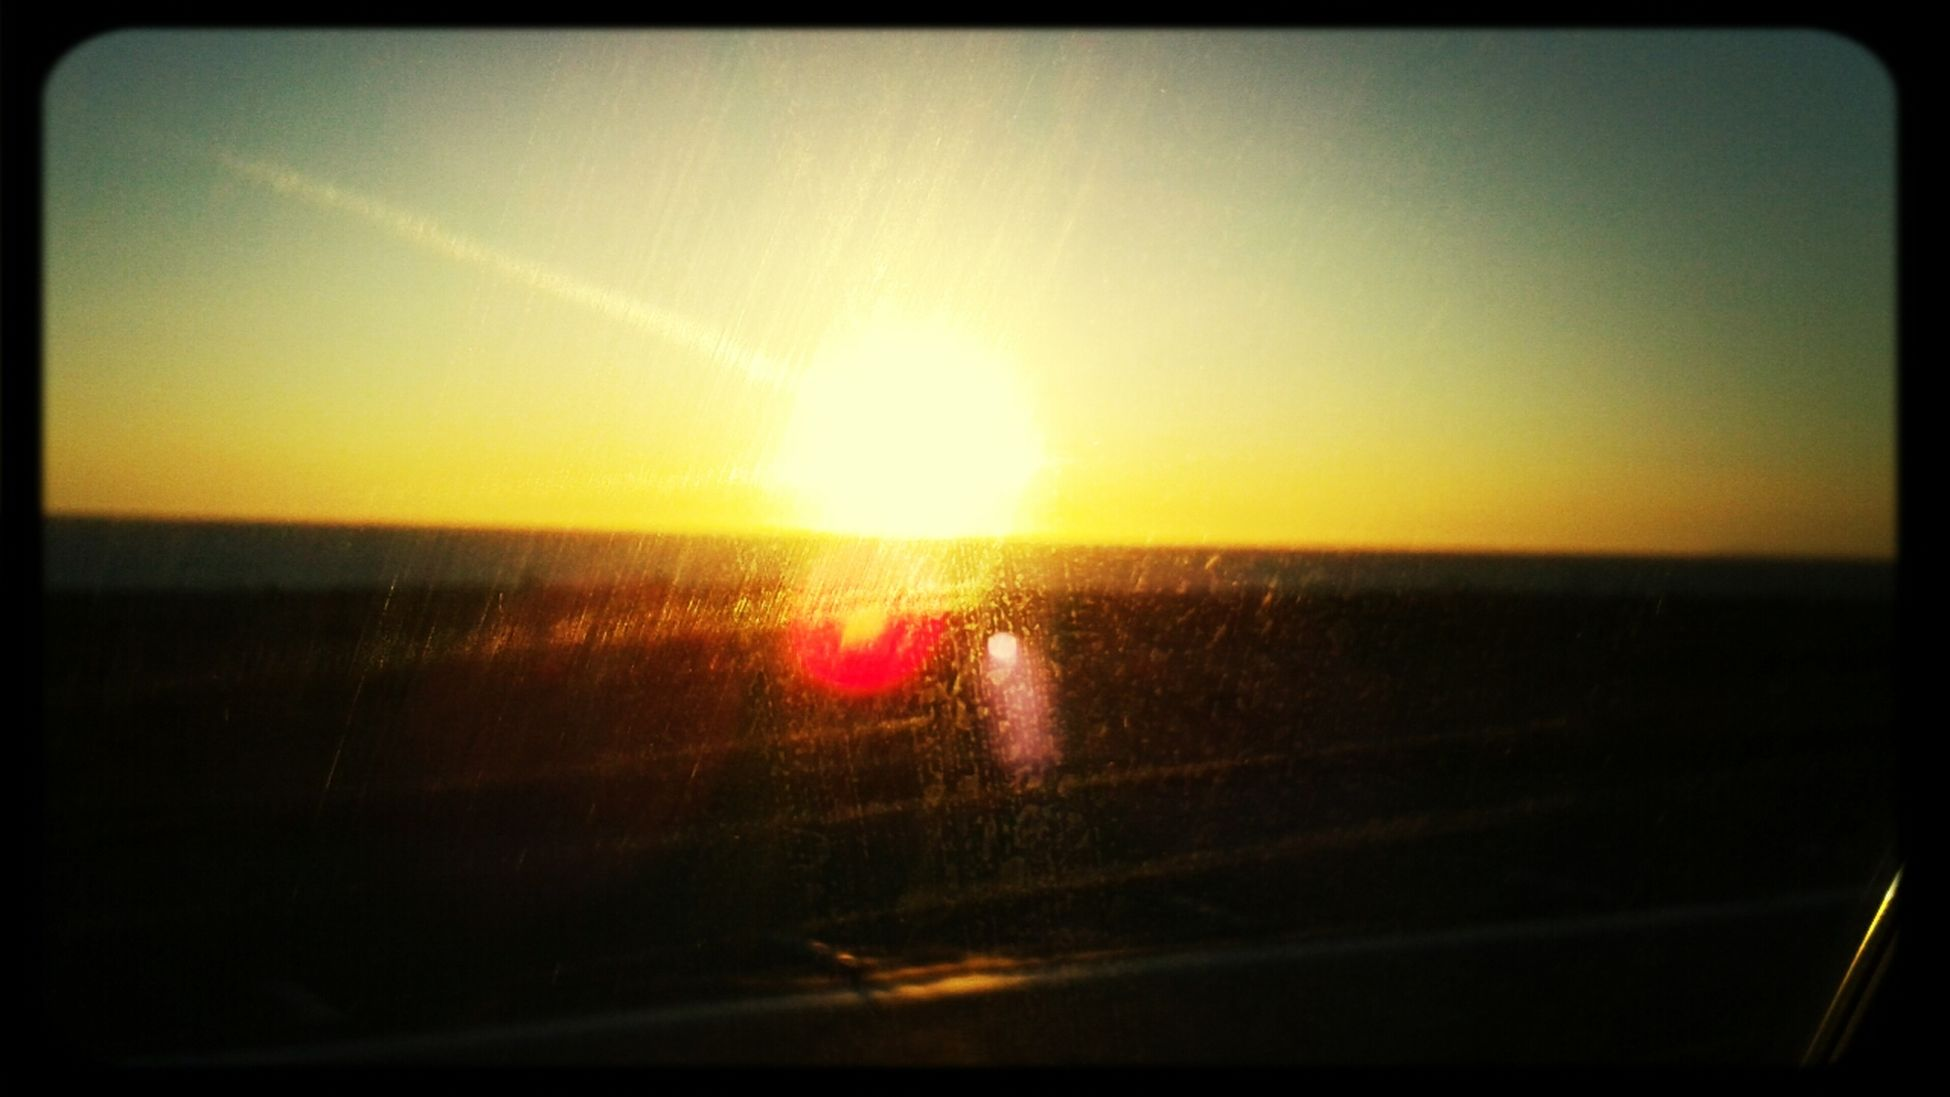 making our way down to san diego